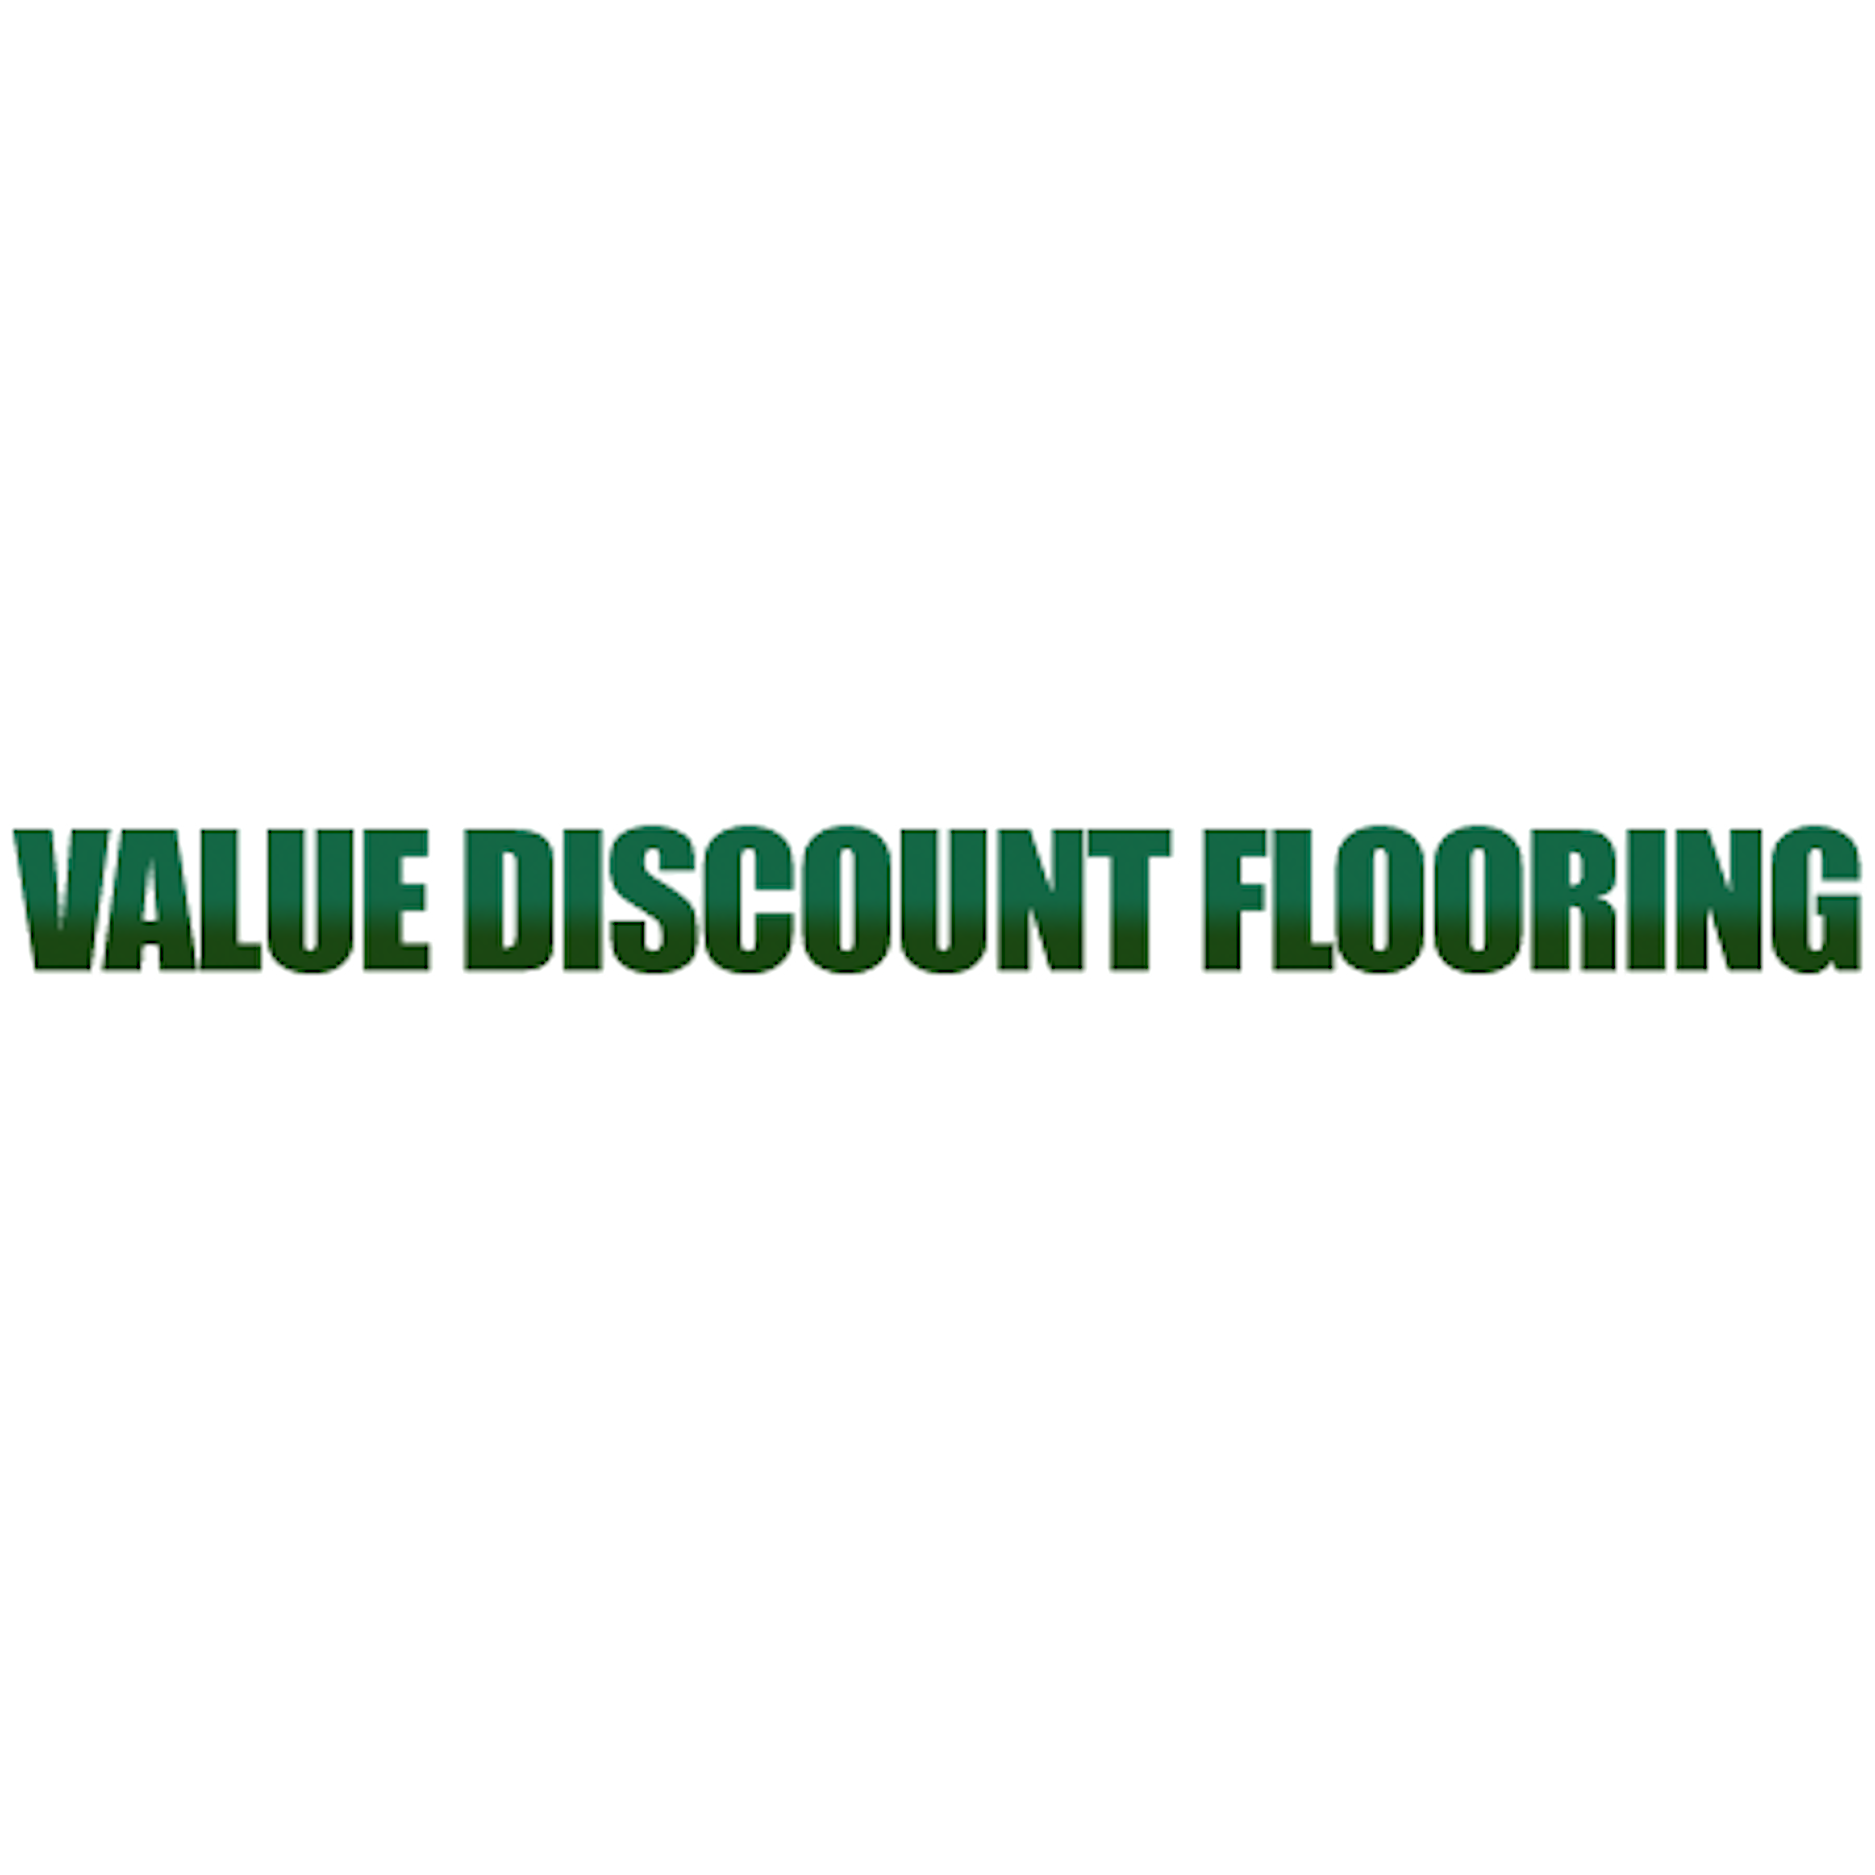 Value Discount Flooring Coupons Near Me In Richmond 8coupons